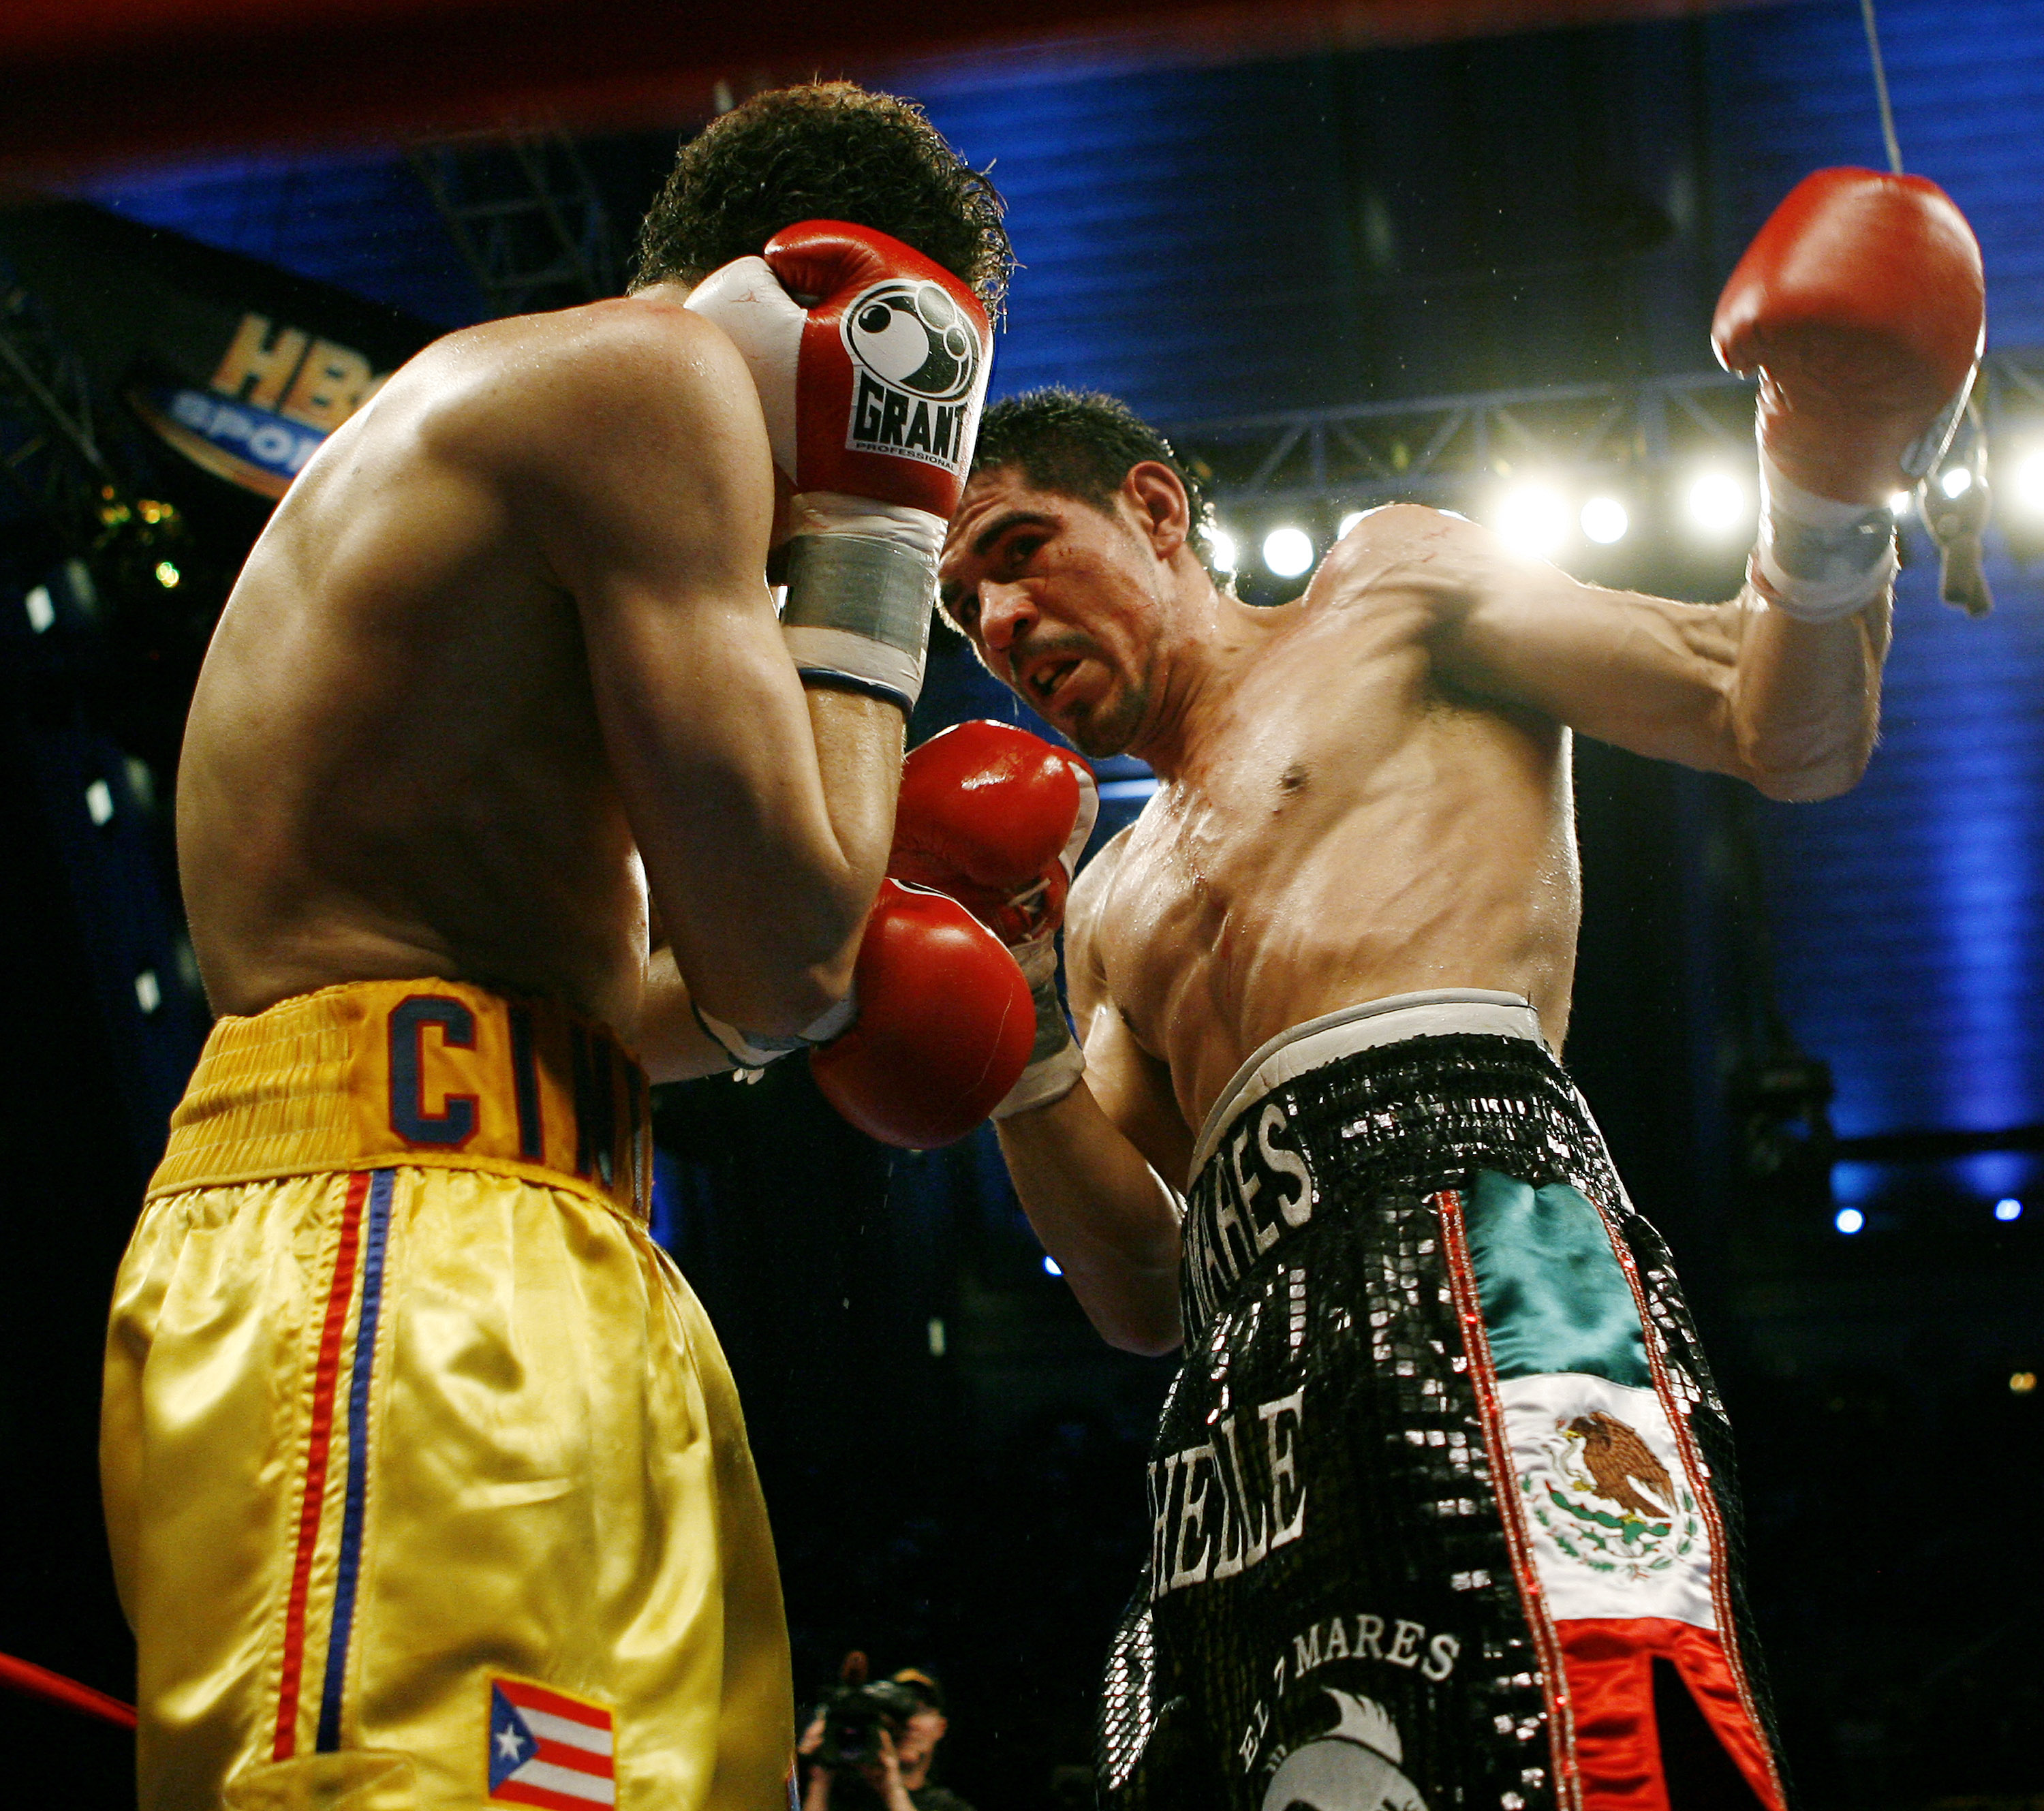 ATLANTIC CITY, NJ  - APRIL 12: Antonio Margarito throws a left during his IBF World Welterweight Title bout against Kermit Cintron at Boardwalk Hall on April 12, 2008 in Atlantic City, New Jersey. (Photo by Jeff Zelevansky/Getty Images)